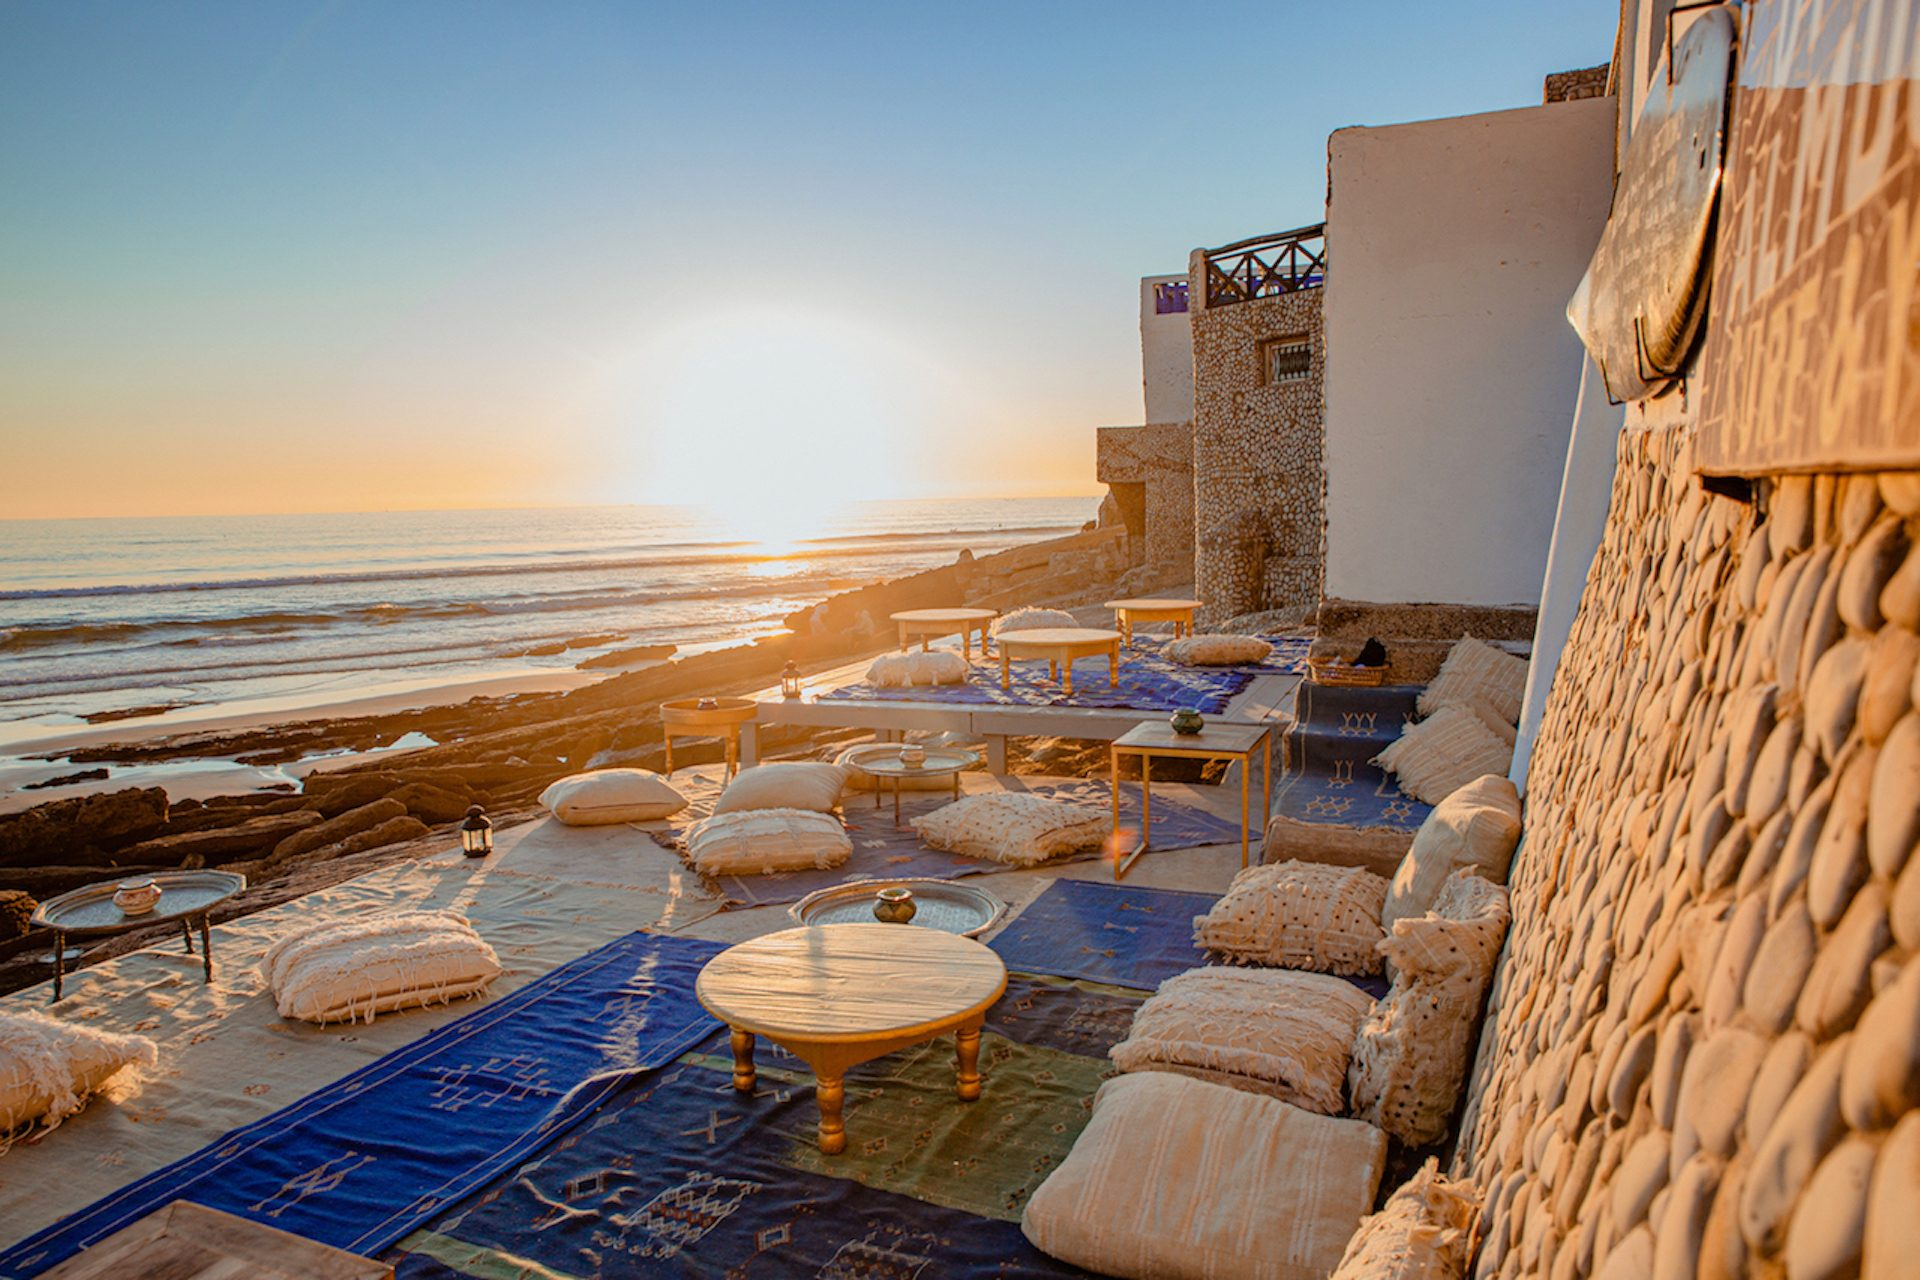 BBB-Bohemian Berber Bar by Dfrost Almugar Surf and Yoga in Morocco